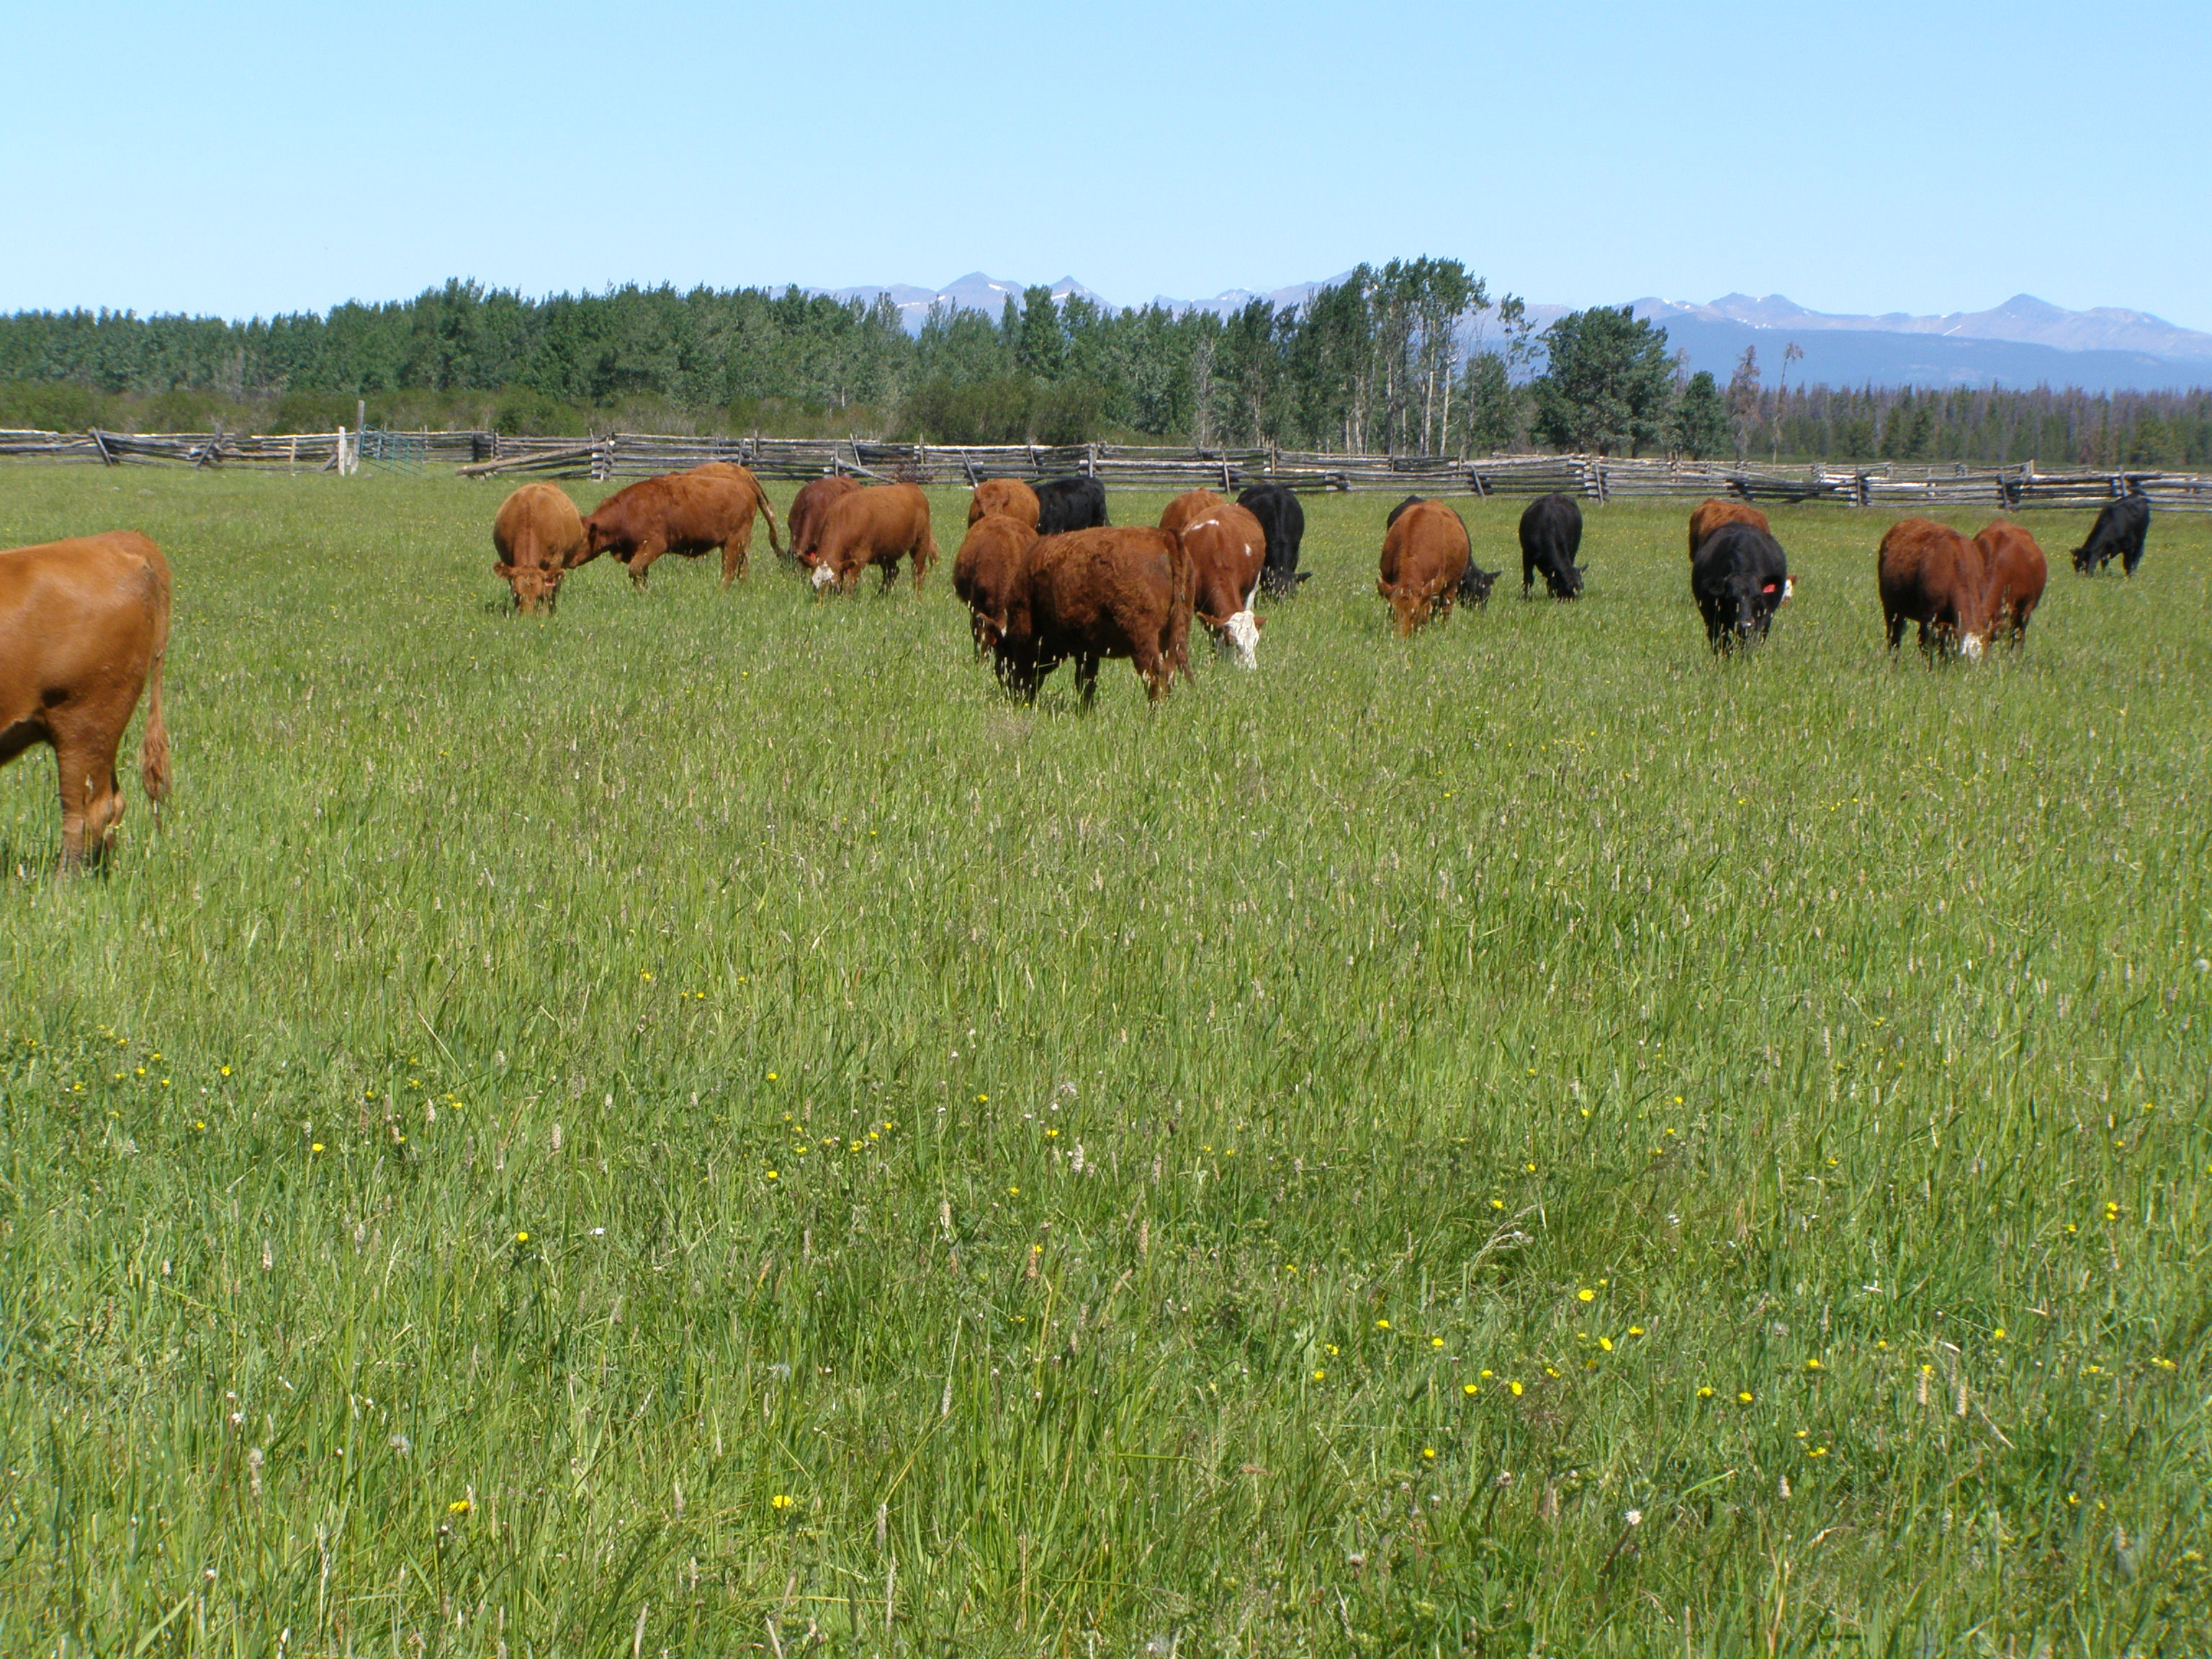 Guichon Creek Ranch > Anahim Lake, BC   1500 Acres Freehold Land / 2500 Acres Lease Land   3 Cattle Yard Sites   Irrigated Hay Production   Crown Range Out Gate